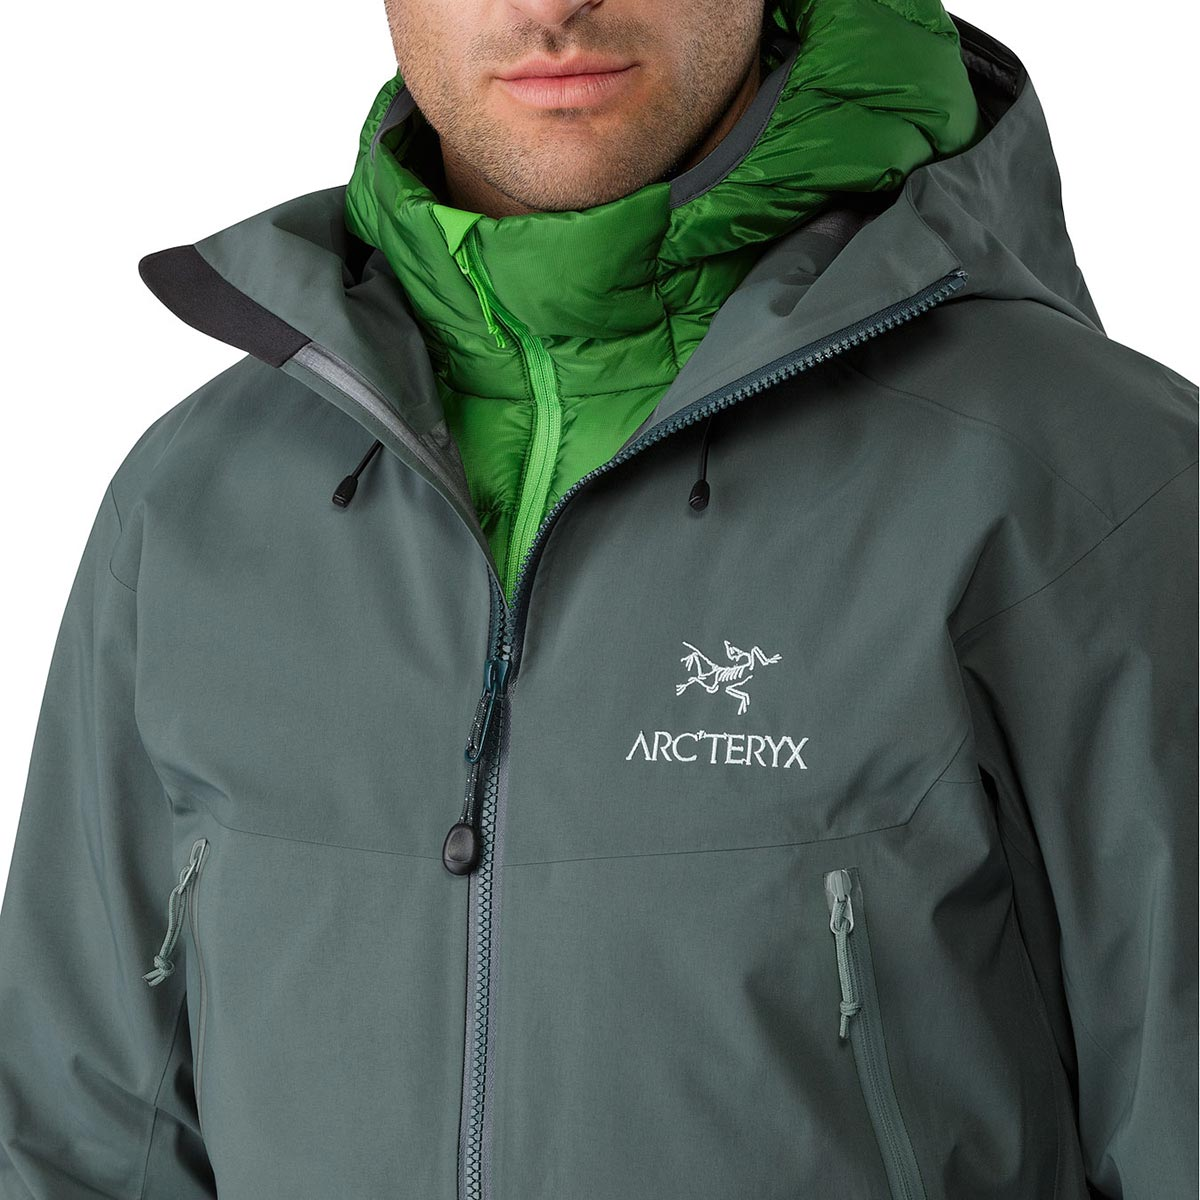 d7f887260bd Arc'teryx Beta SV Jacket, men's, discontinued colors (free ground ...